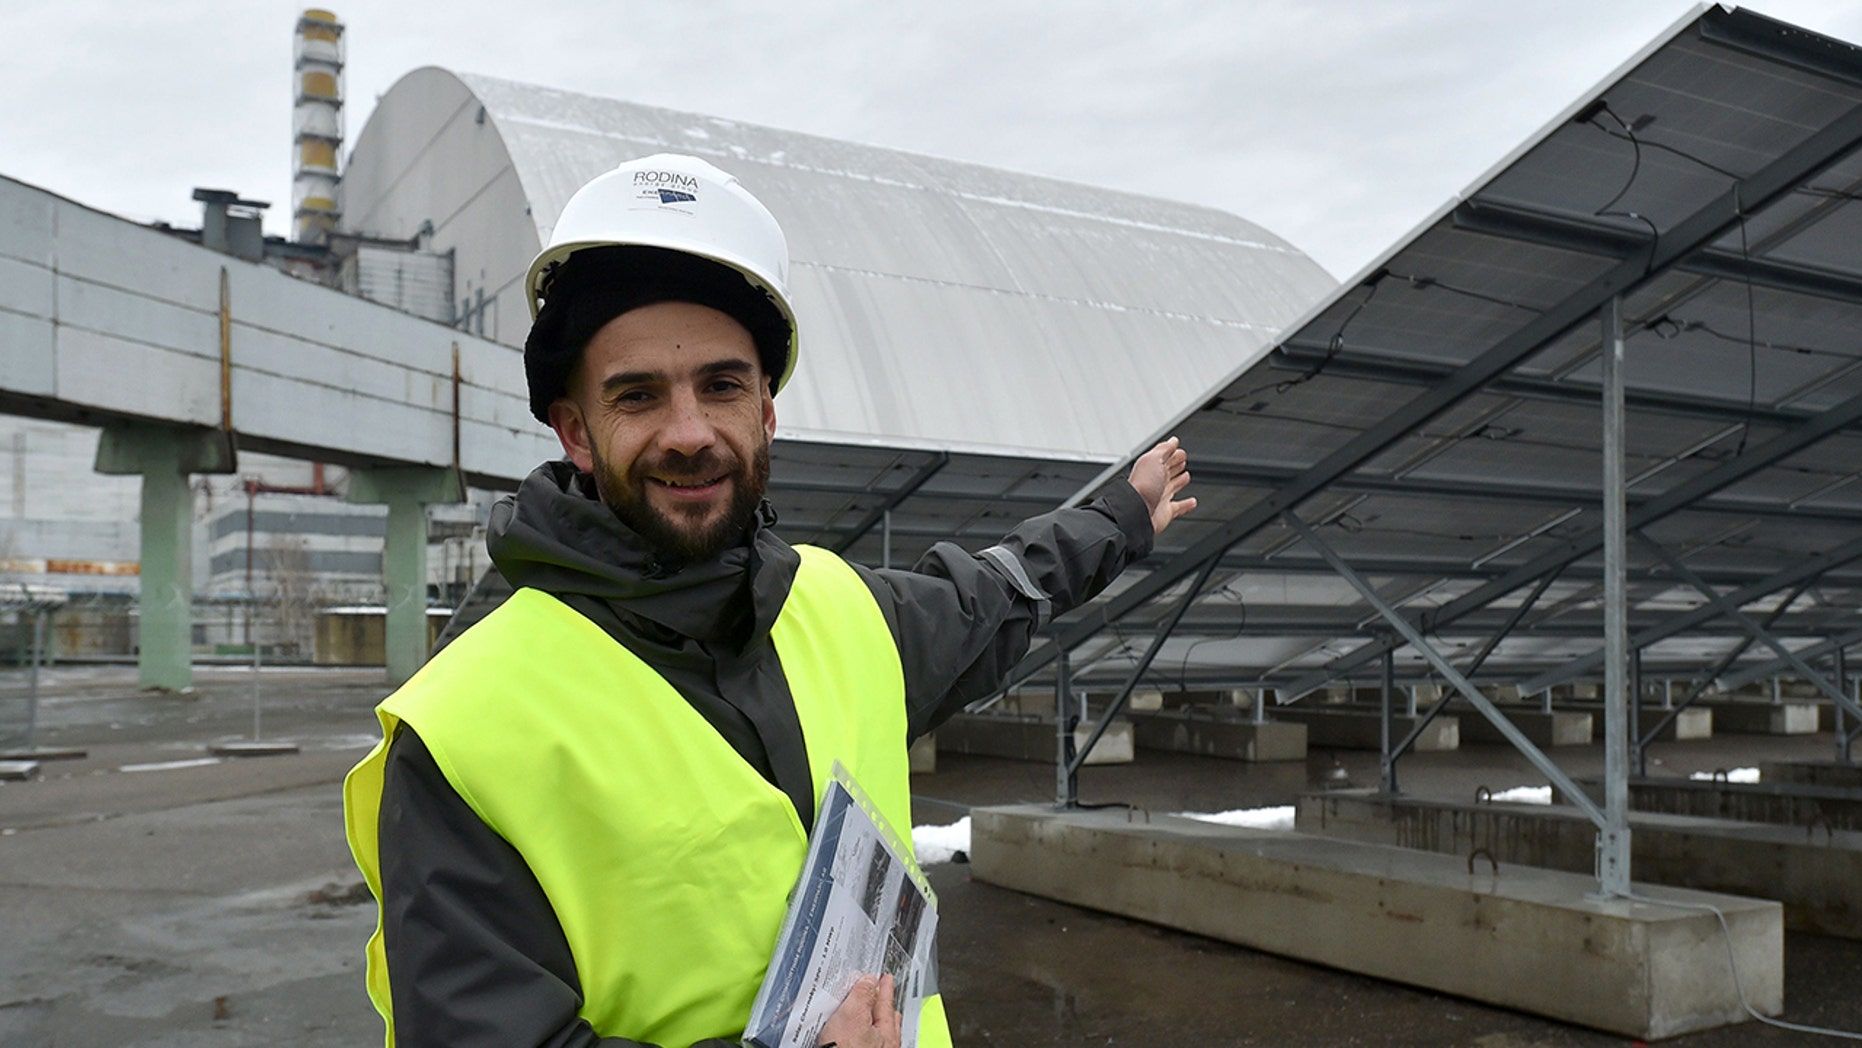 Yevgen Varyagin, the head of the Ukrainian-German company Solar Chernobyl speaks to AFP journalists in front of photovoltaic panels on the new one-megawatt power plant next to the New Safe Confinement over the fourth block of the Chernobyl nuclear plant on December 12, 2017 (GENYA SAVILOV/AFP/Getty Images)